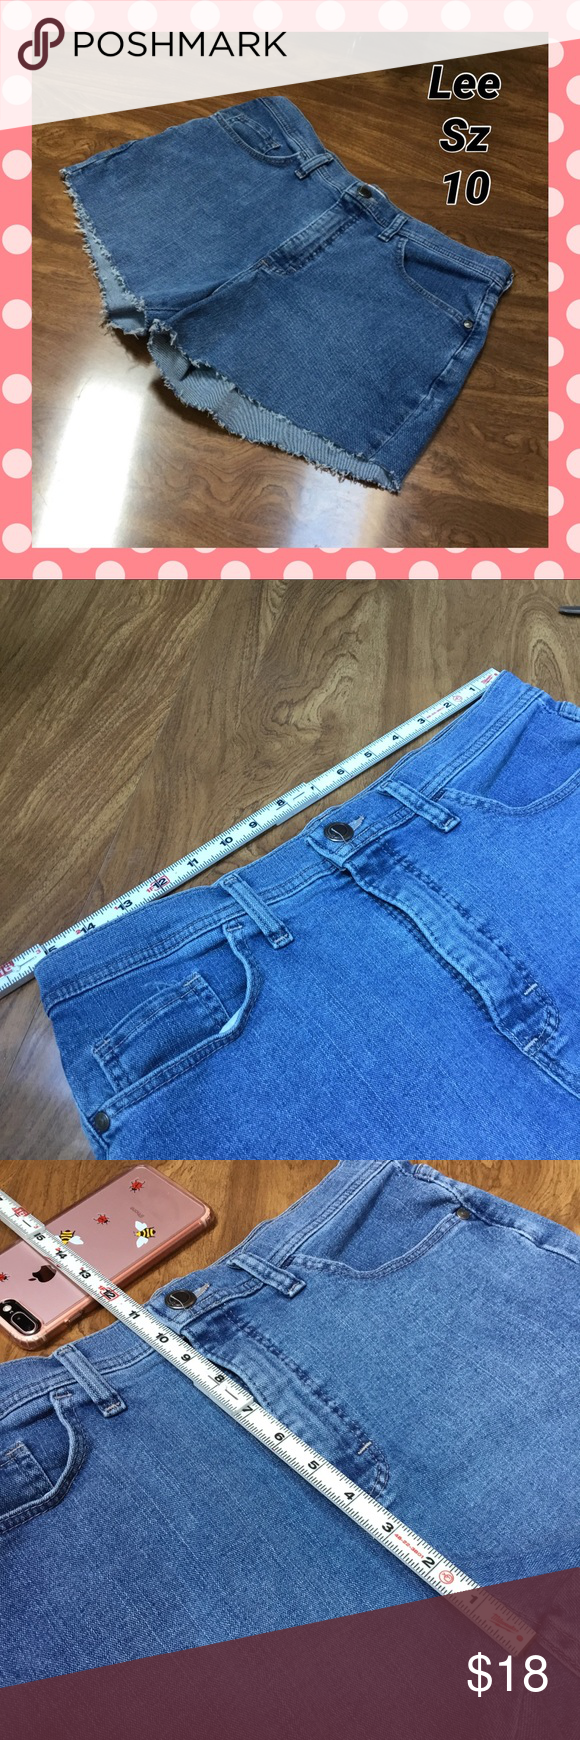 Lee cut off jean shorts Frayed edge.  See measurement pics for sizing specifics. Lee Shorts Jean Shorts